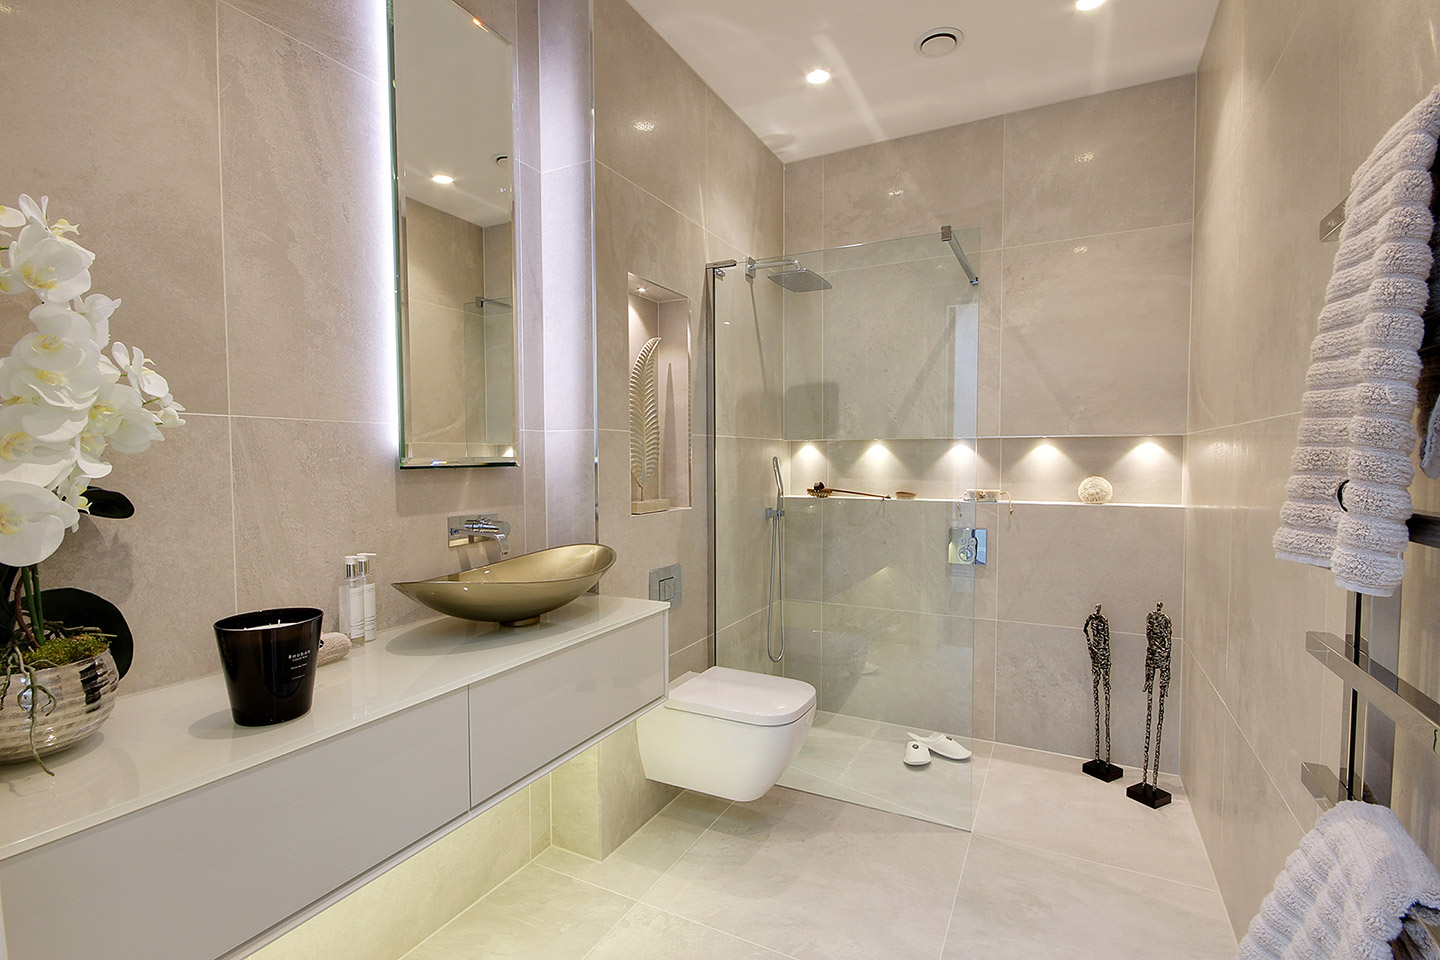 Luxury Bathroom - Shower Room : Hadley Wood, London